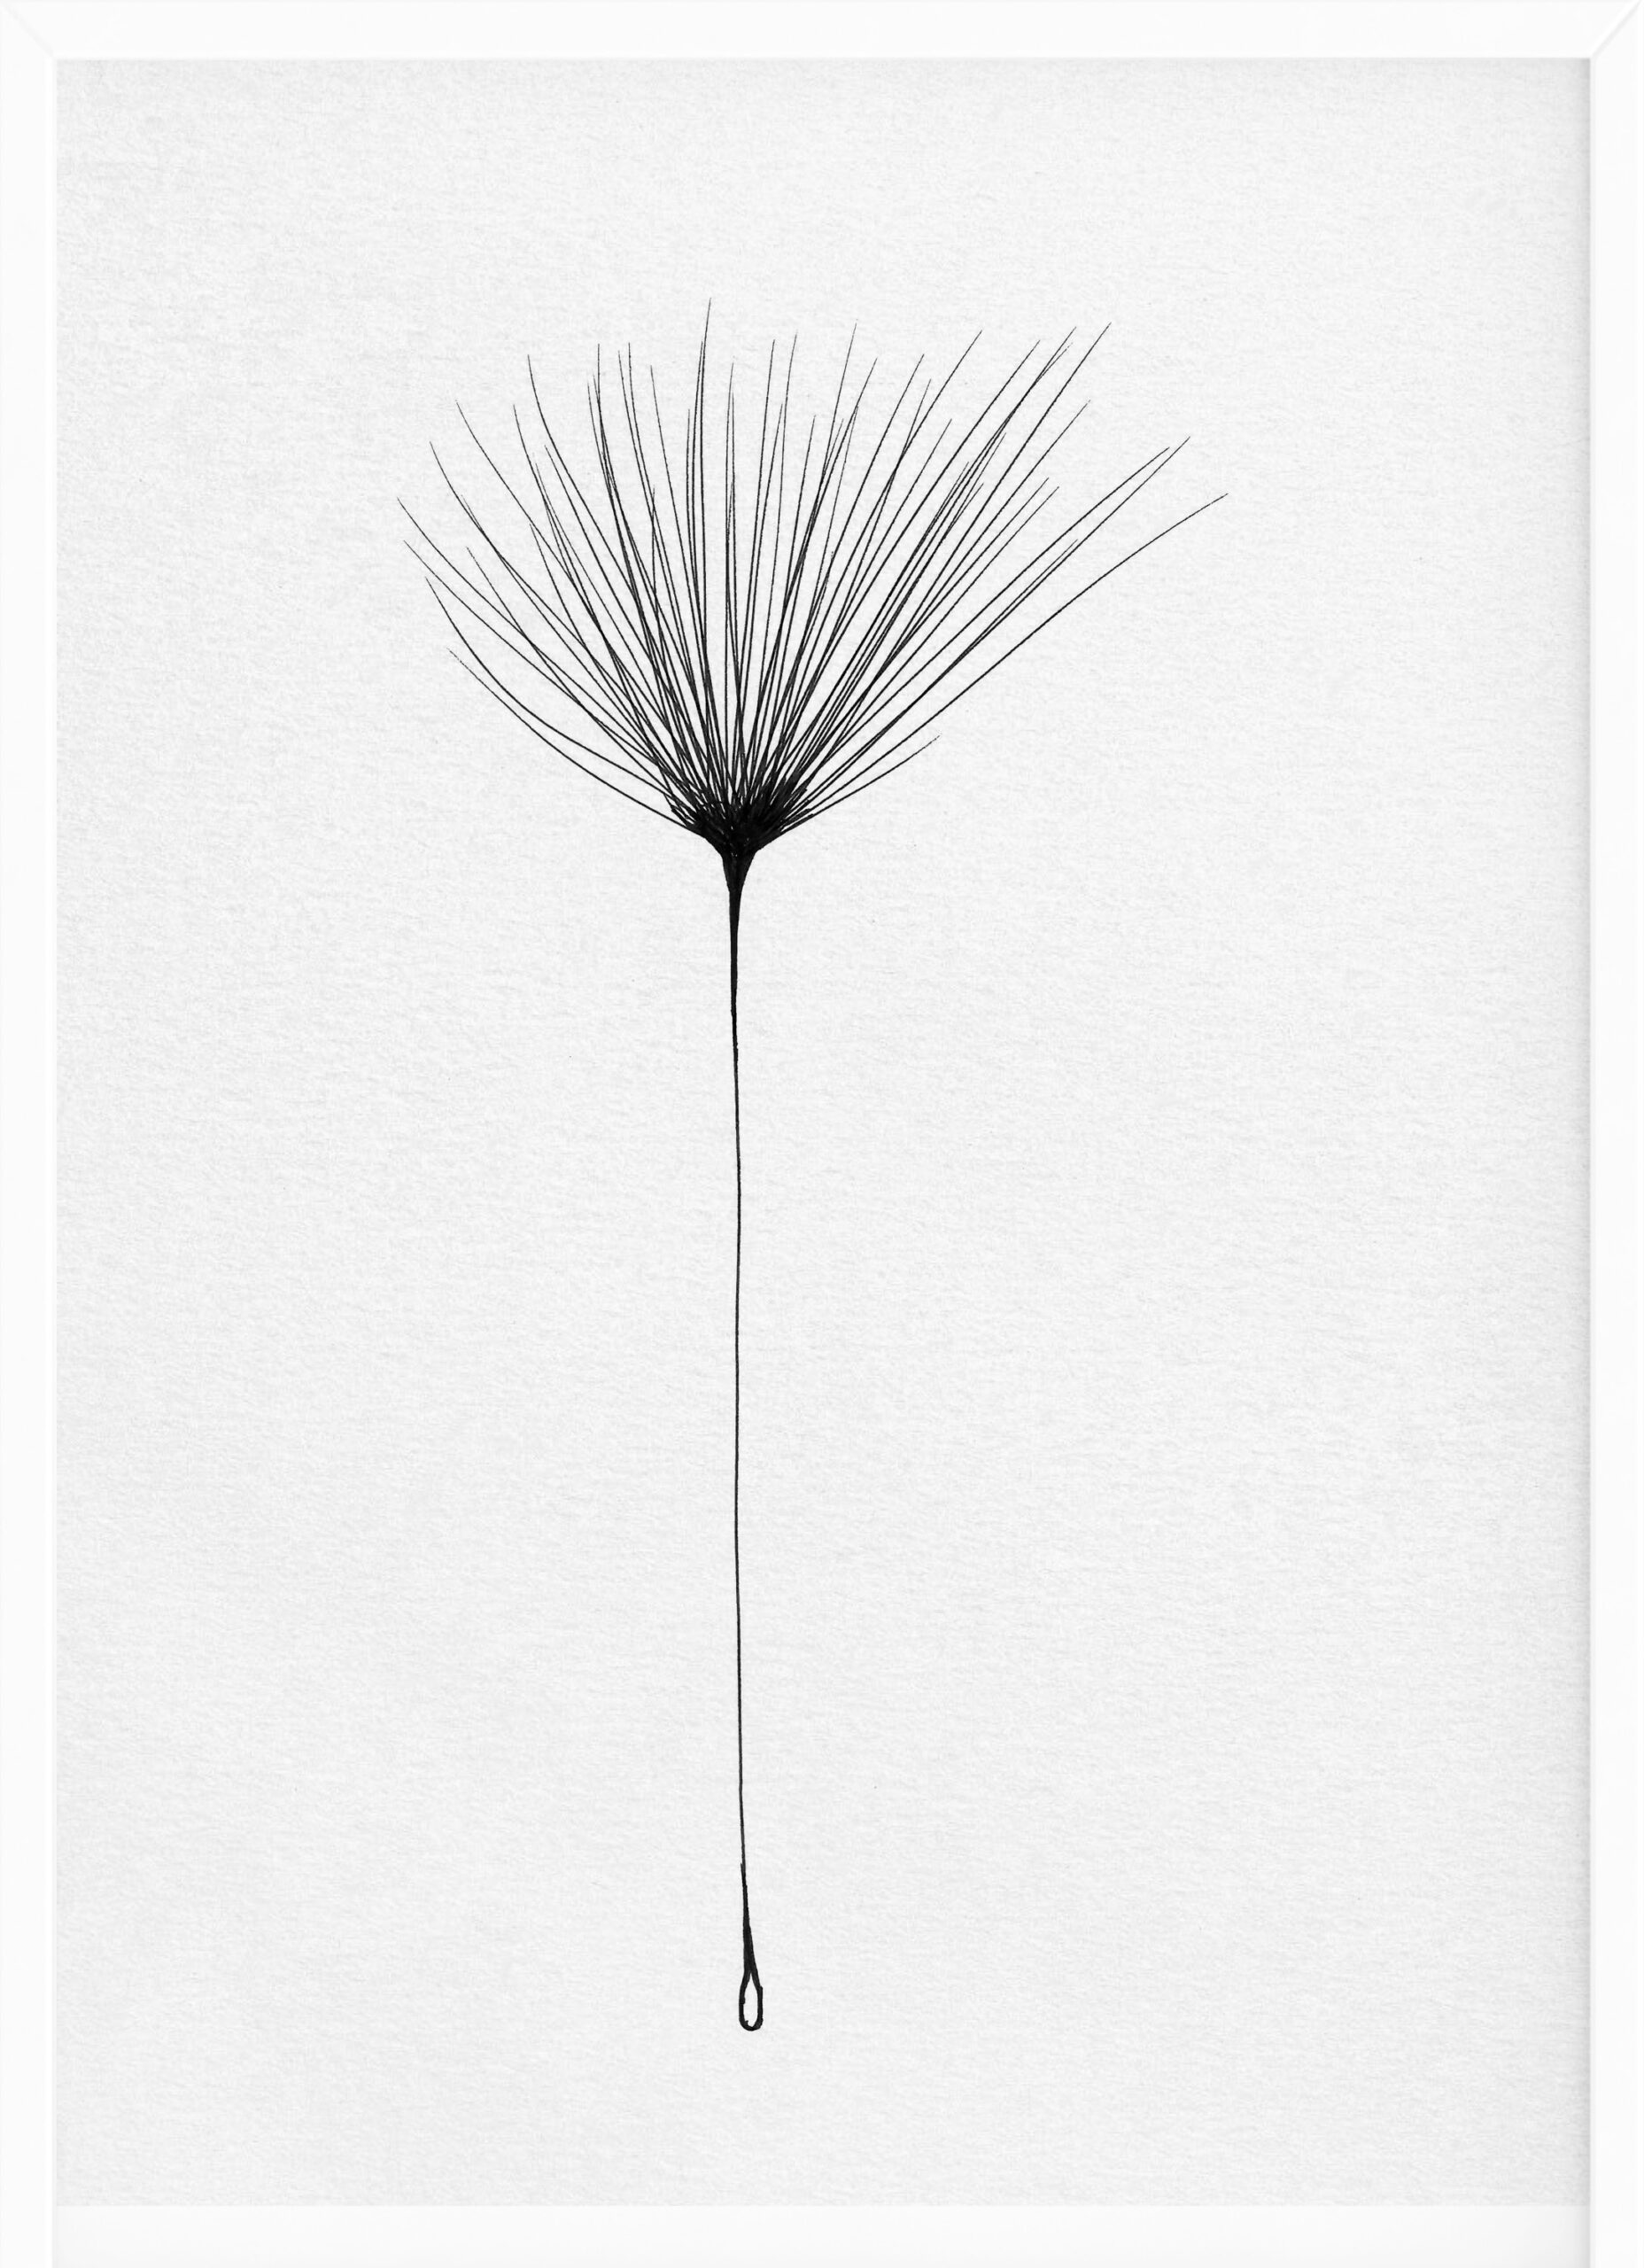 Silence | Drawings | Mario Trimarchi Design3